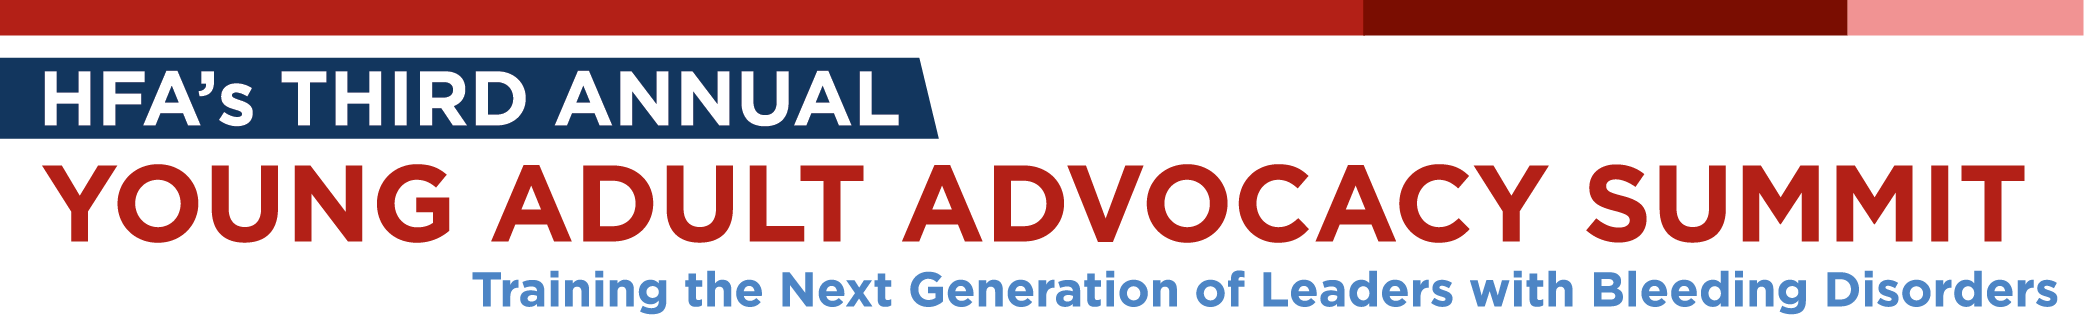 HFA Young Adult Advocacy Summit